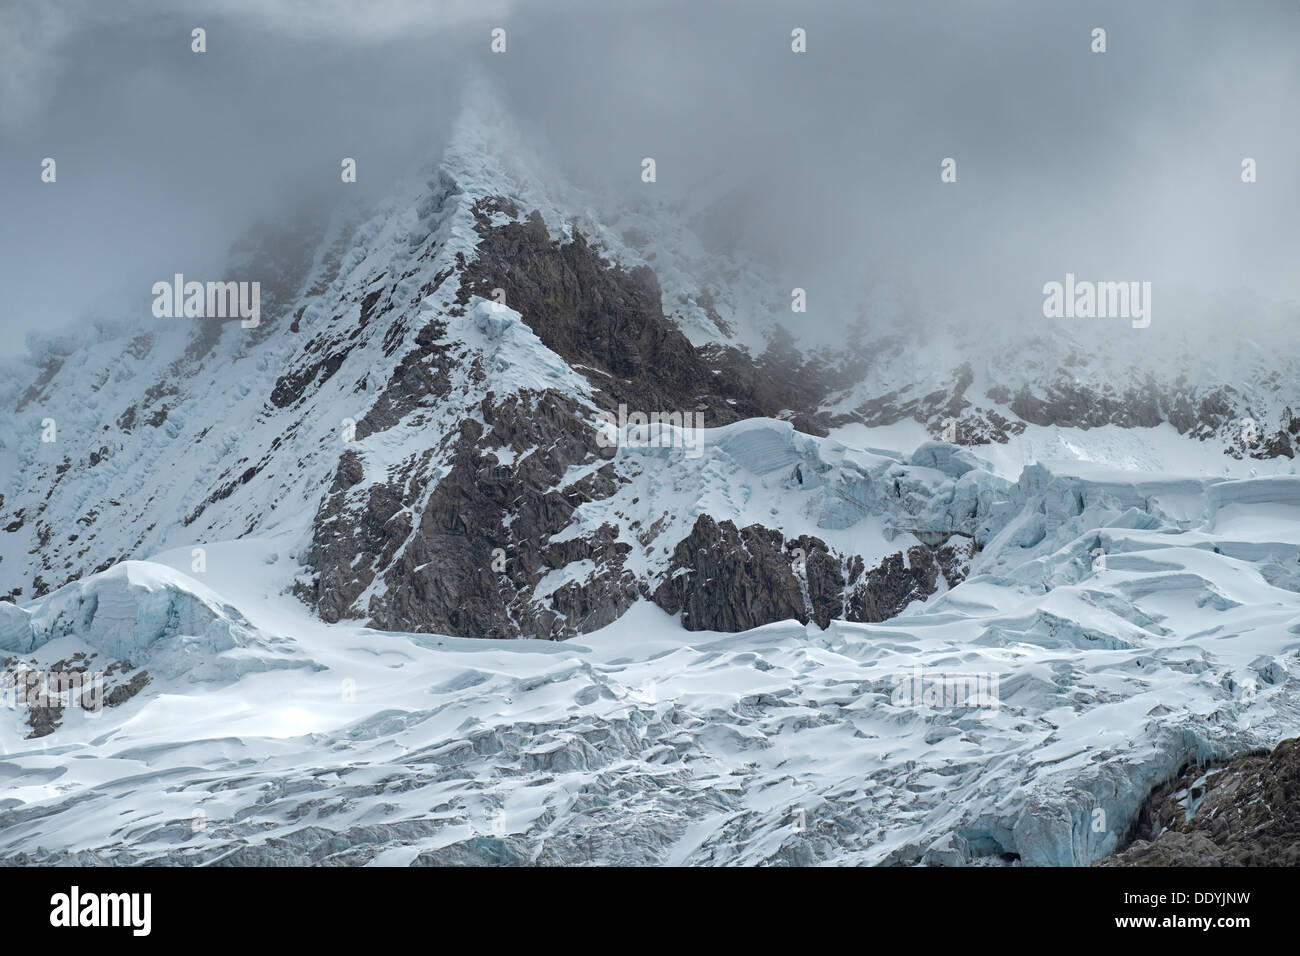 Glacier below Pisco and above Laguna 69 in the Huascarán National Park, Peruvian Andes. - Stock Image